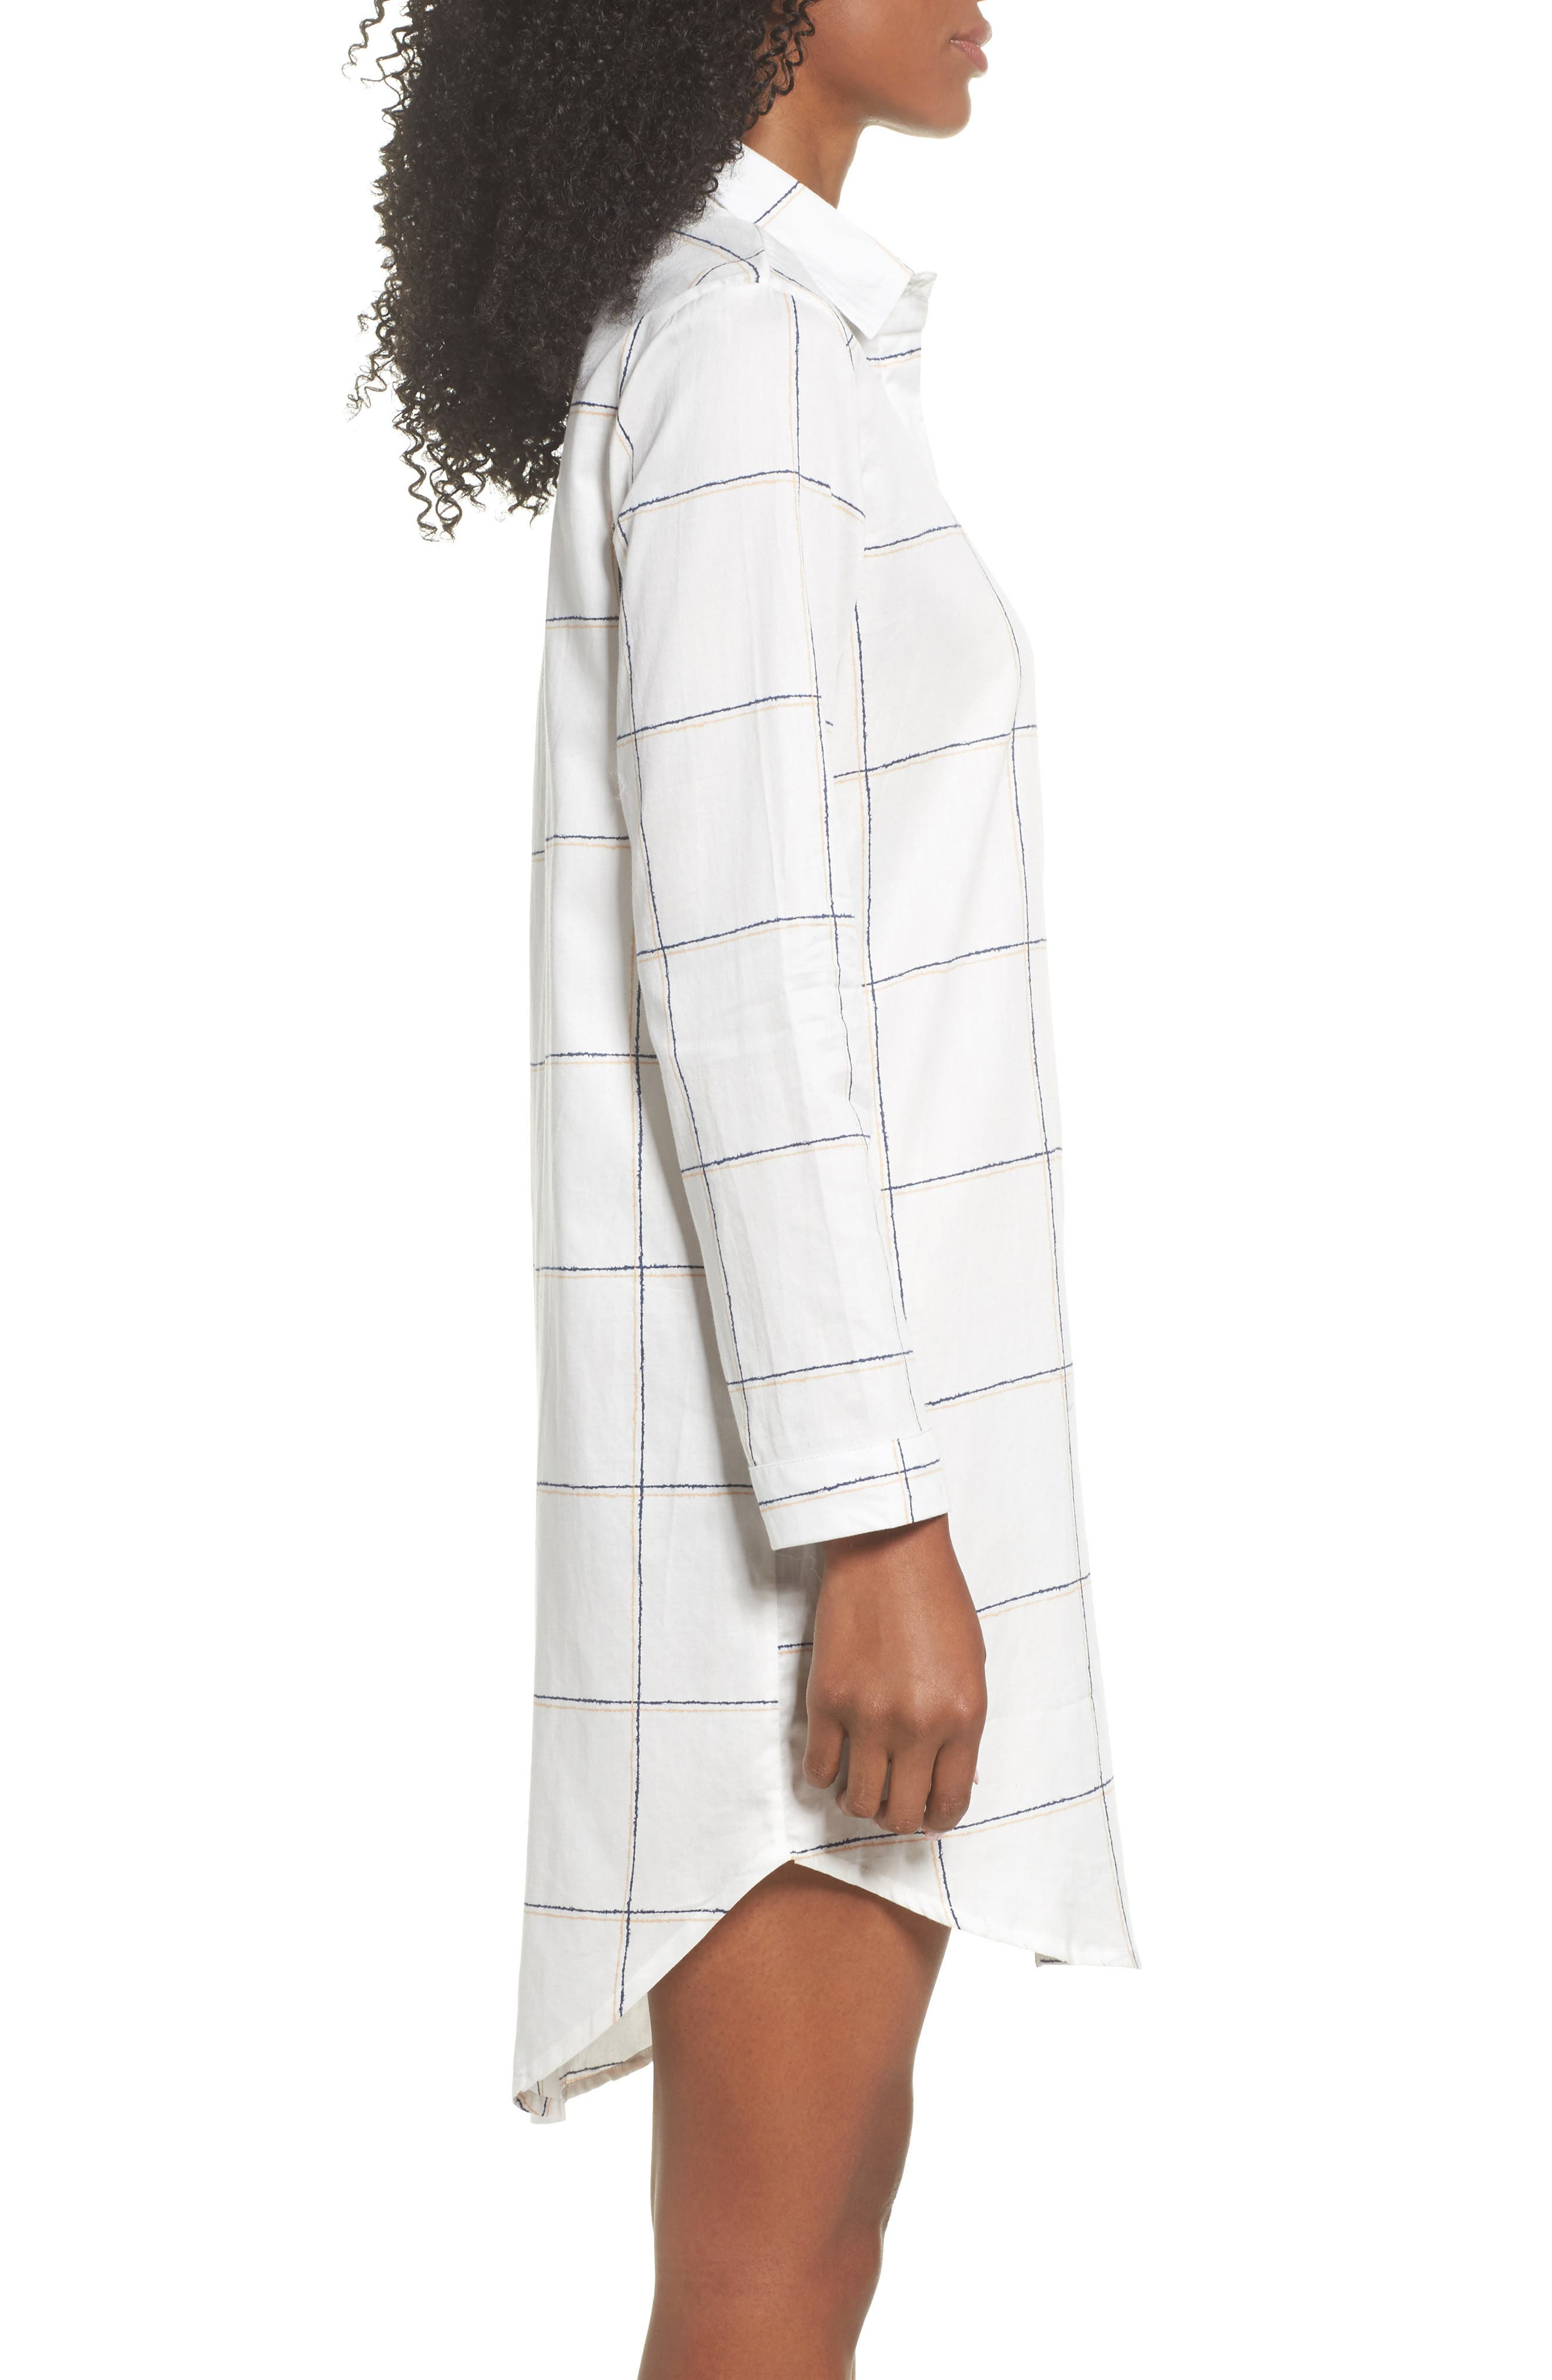 Evey Nightshirt,                             Alternate thumbnail 3, color,                             Coffee Check White